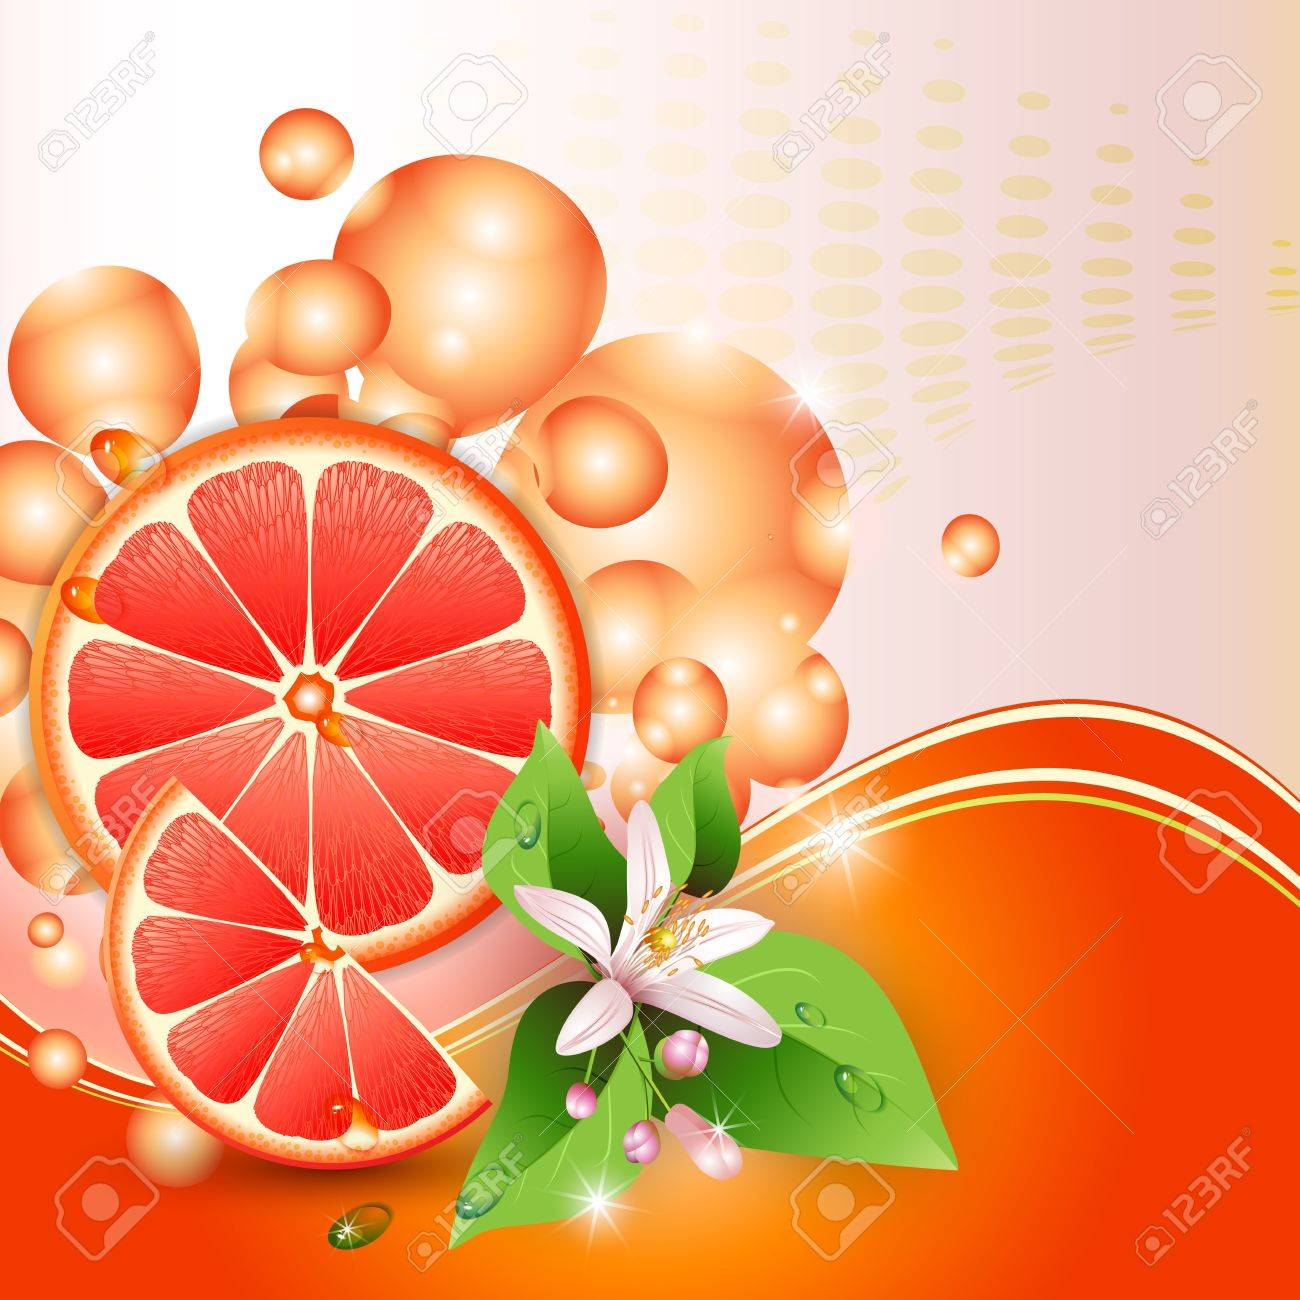 Abstract background with juicy slices of grapefruit and flowers Stock Vector - 13618351